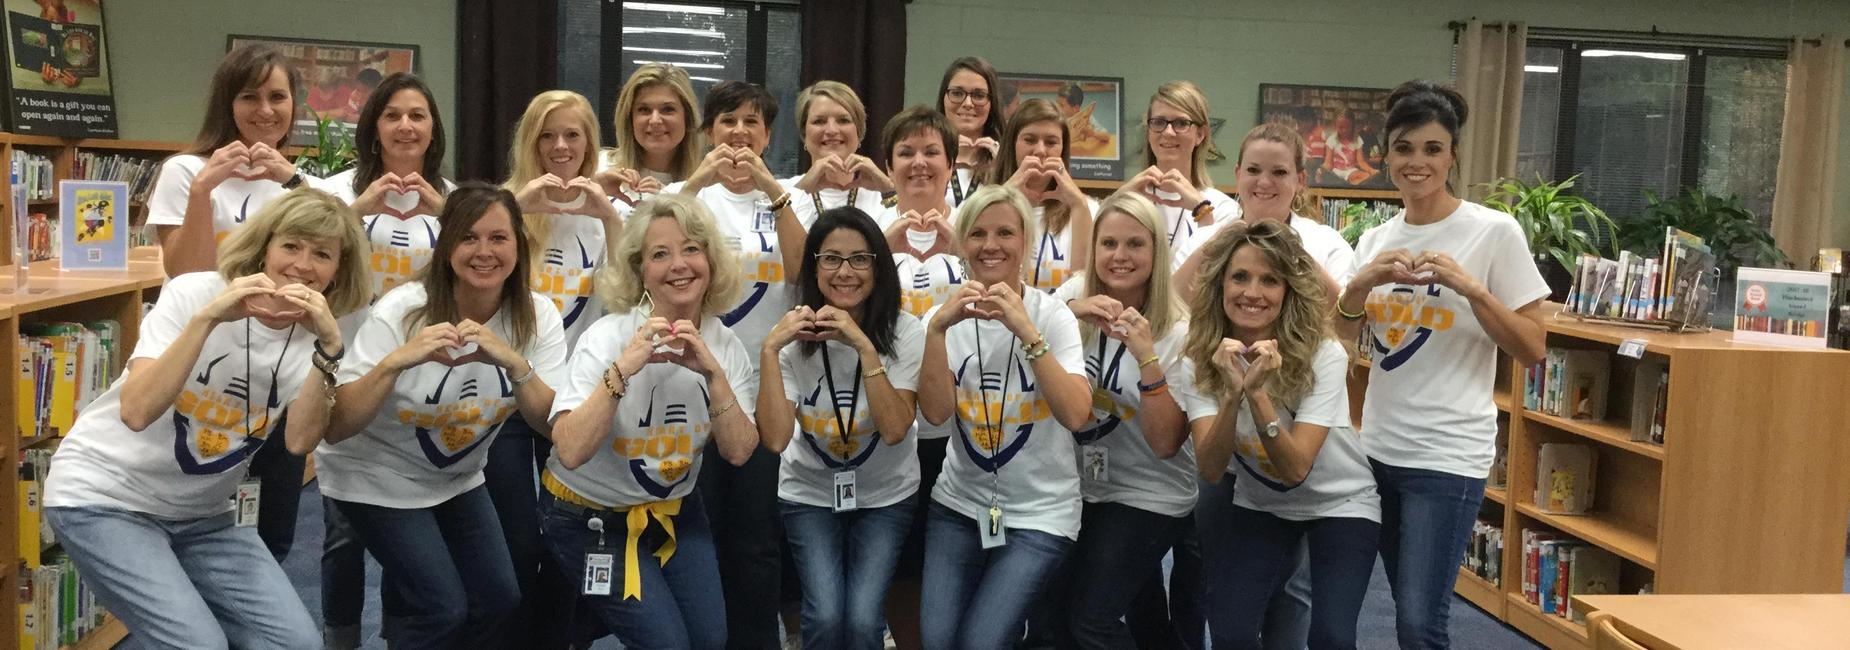 Teachers with Heart Of Gold t-shirts.